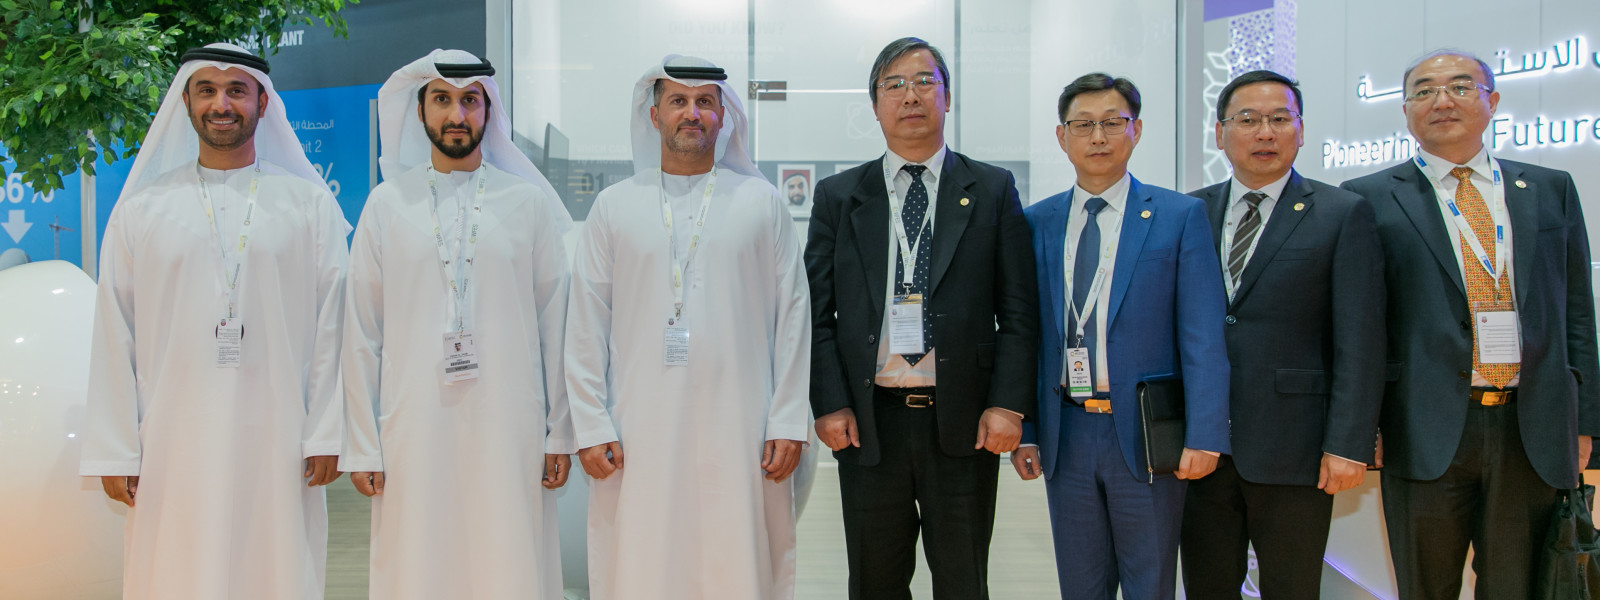 enec-particpation-in-wfes2019-5d35829757402.jpg (Gallery Image)